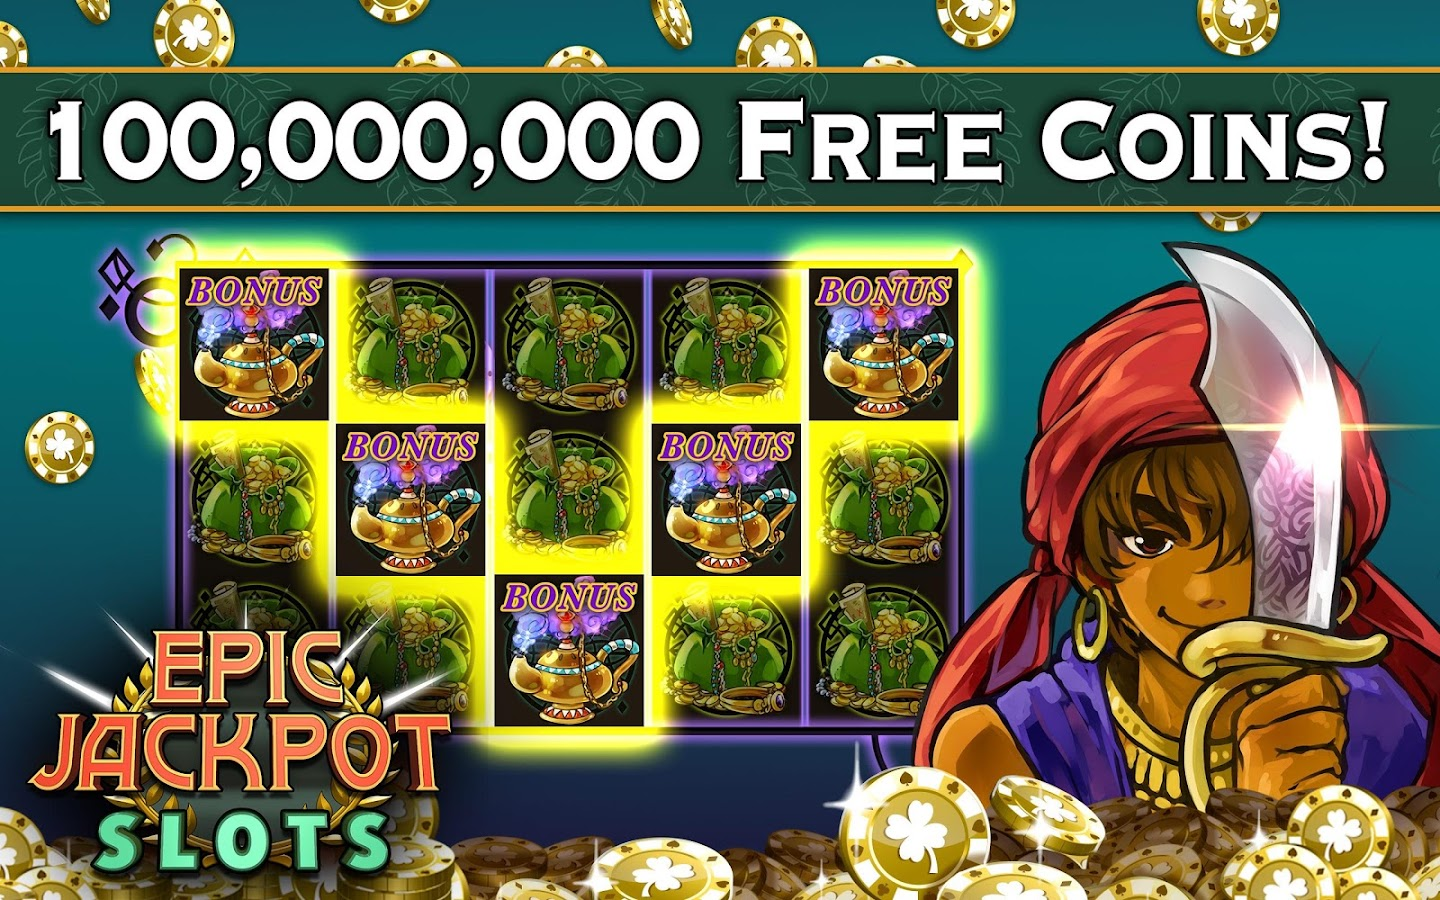 Lotto Lucky Slot Machine - Play the Online Slot for Free